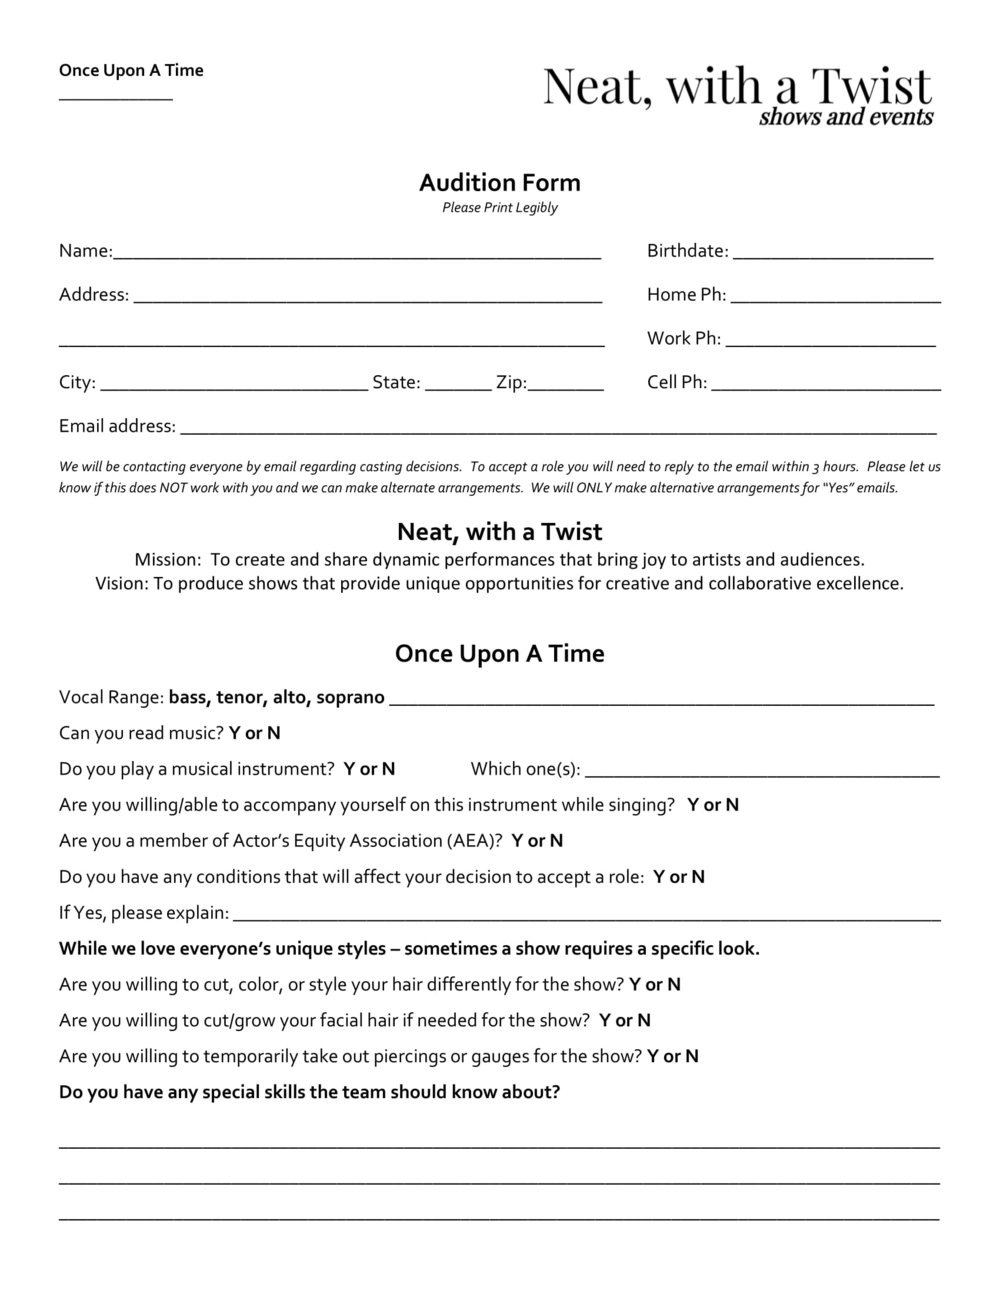 NWAT Audition Form - OUAT-1.jpg